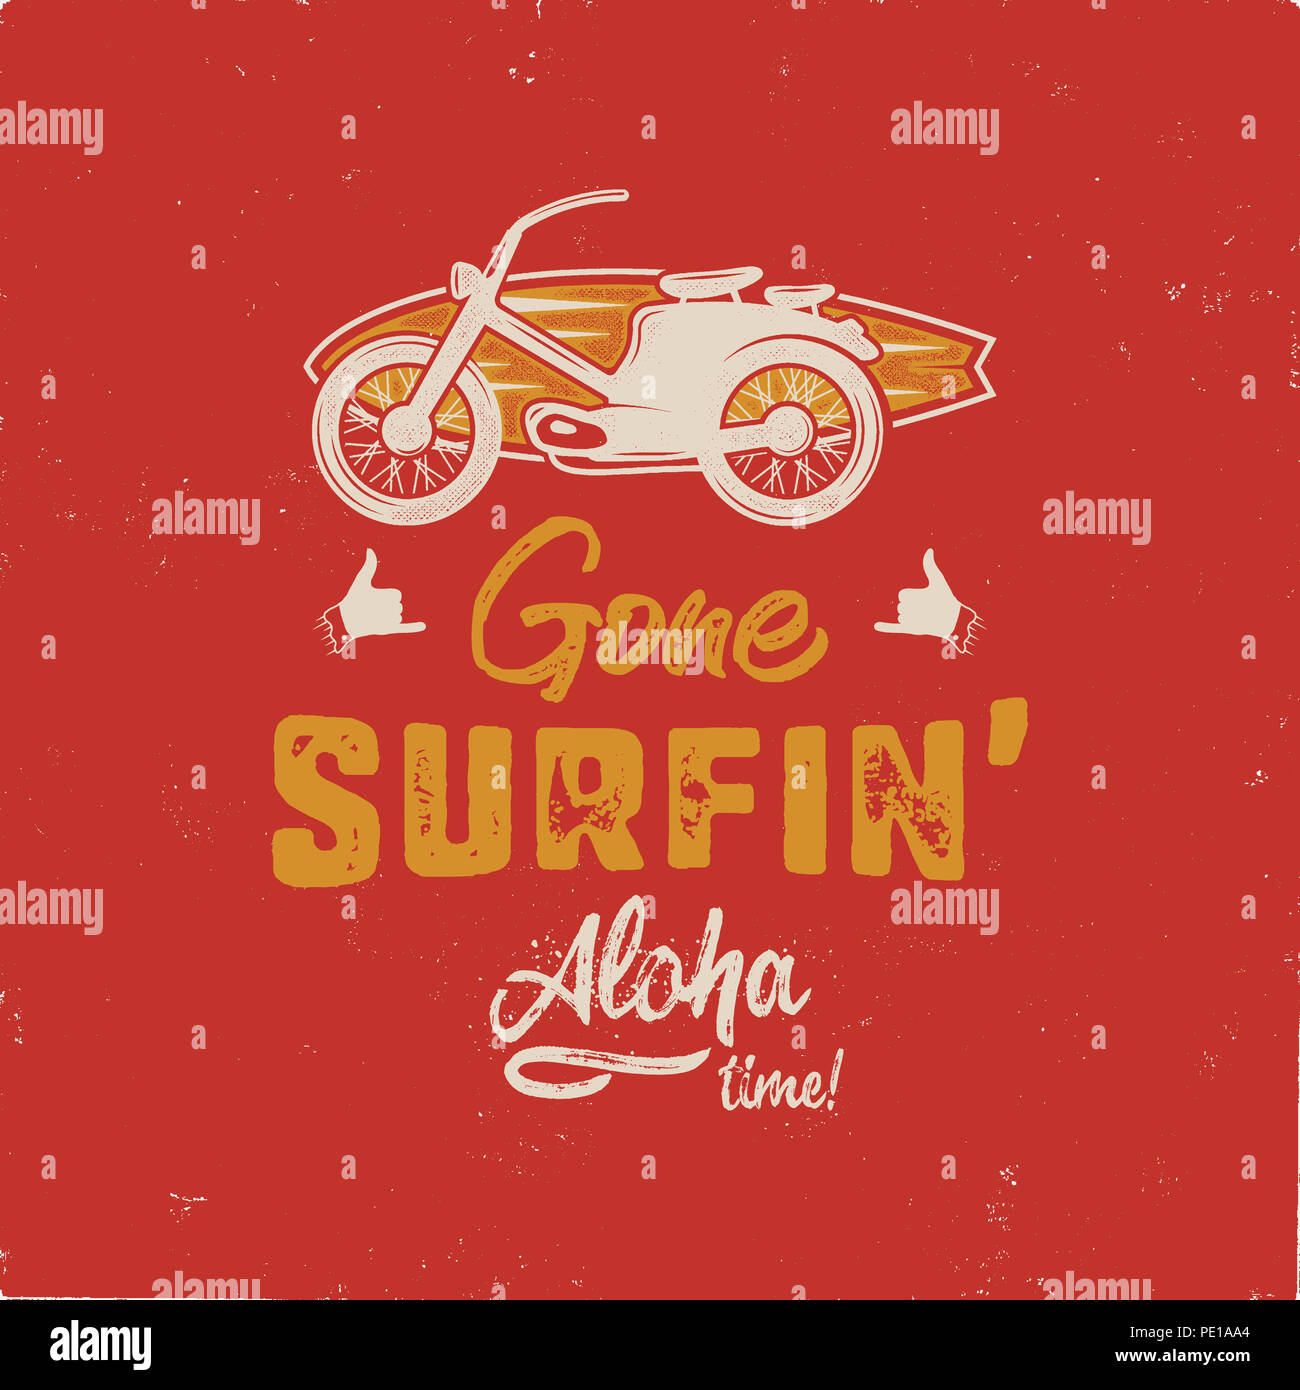 Vintage hand drawn summer T-Shirt. Gone surfing - aloha time with surf old motorcycle and shaka sign. Perfect for tee, mug or any other prints. Stock  - Stock Image